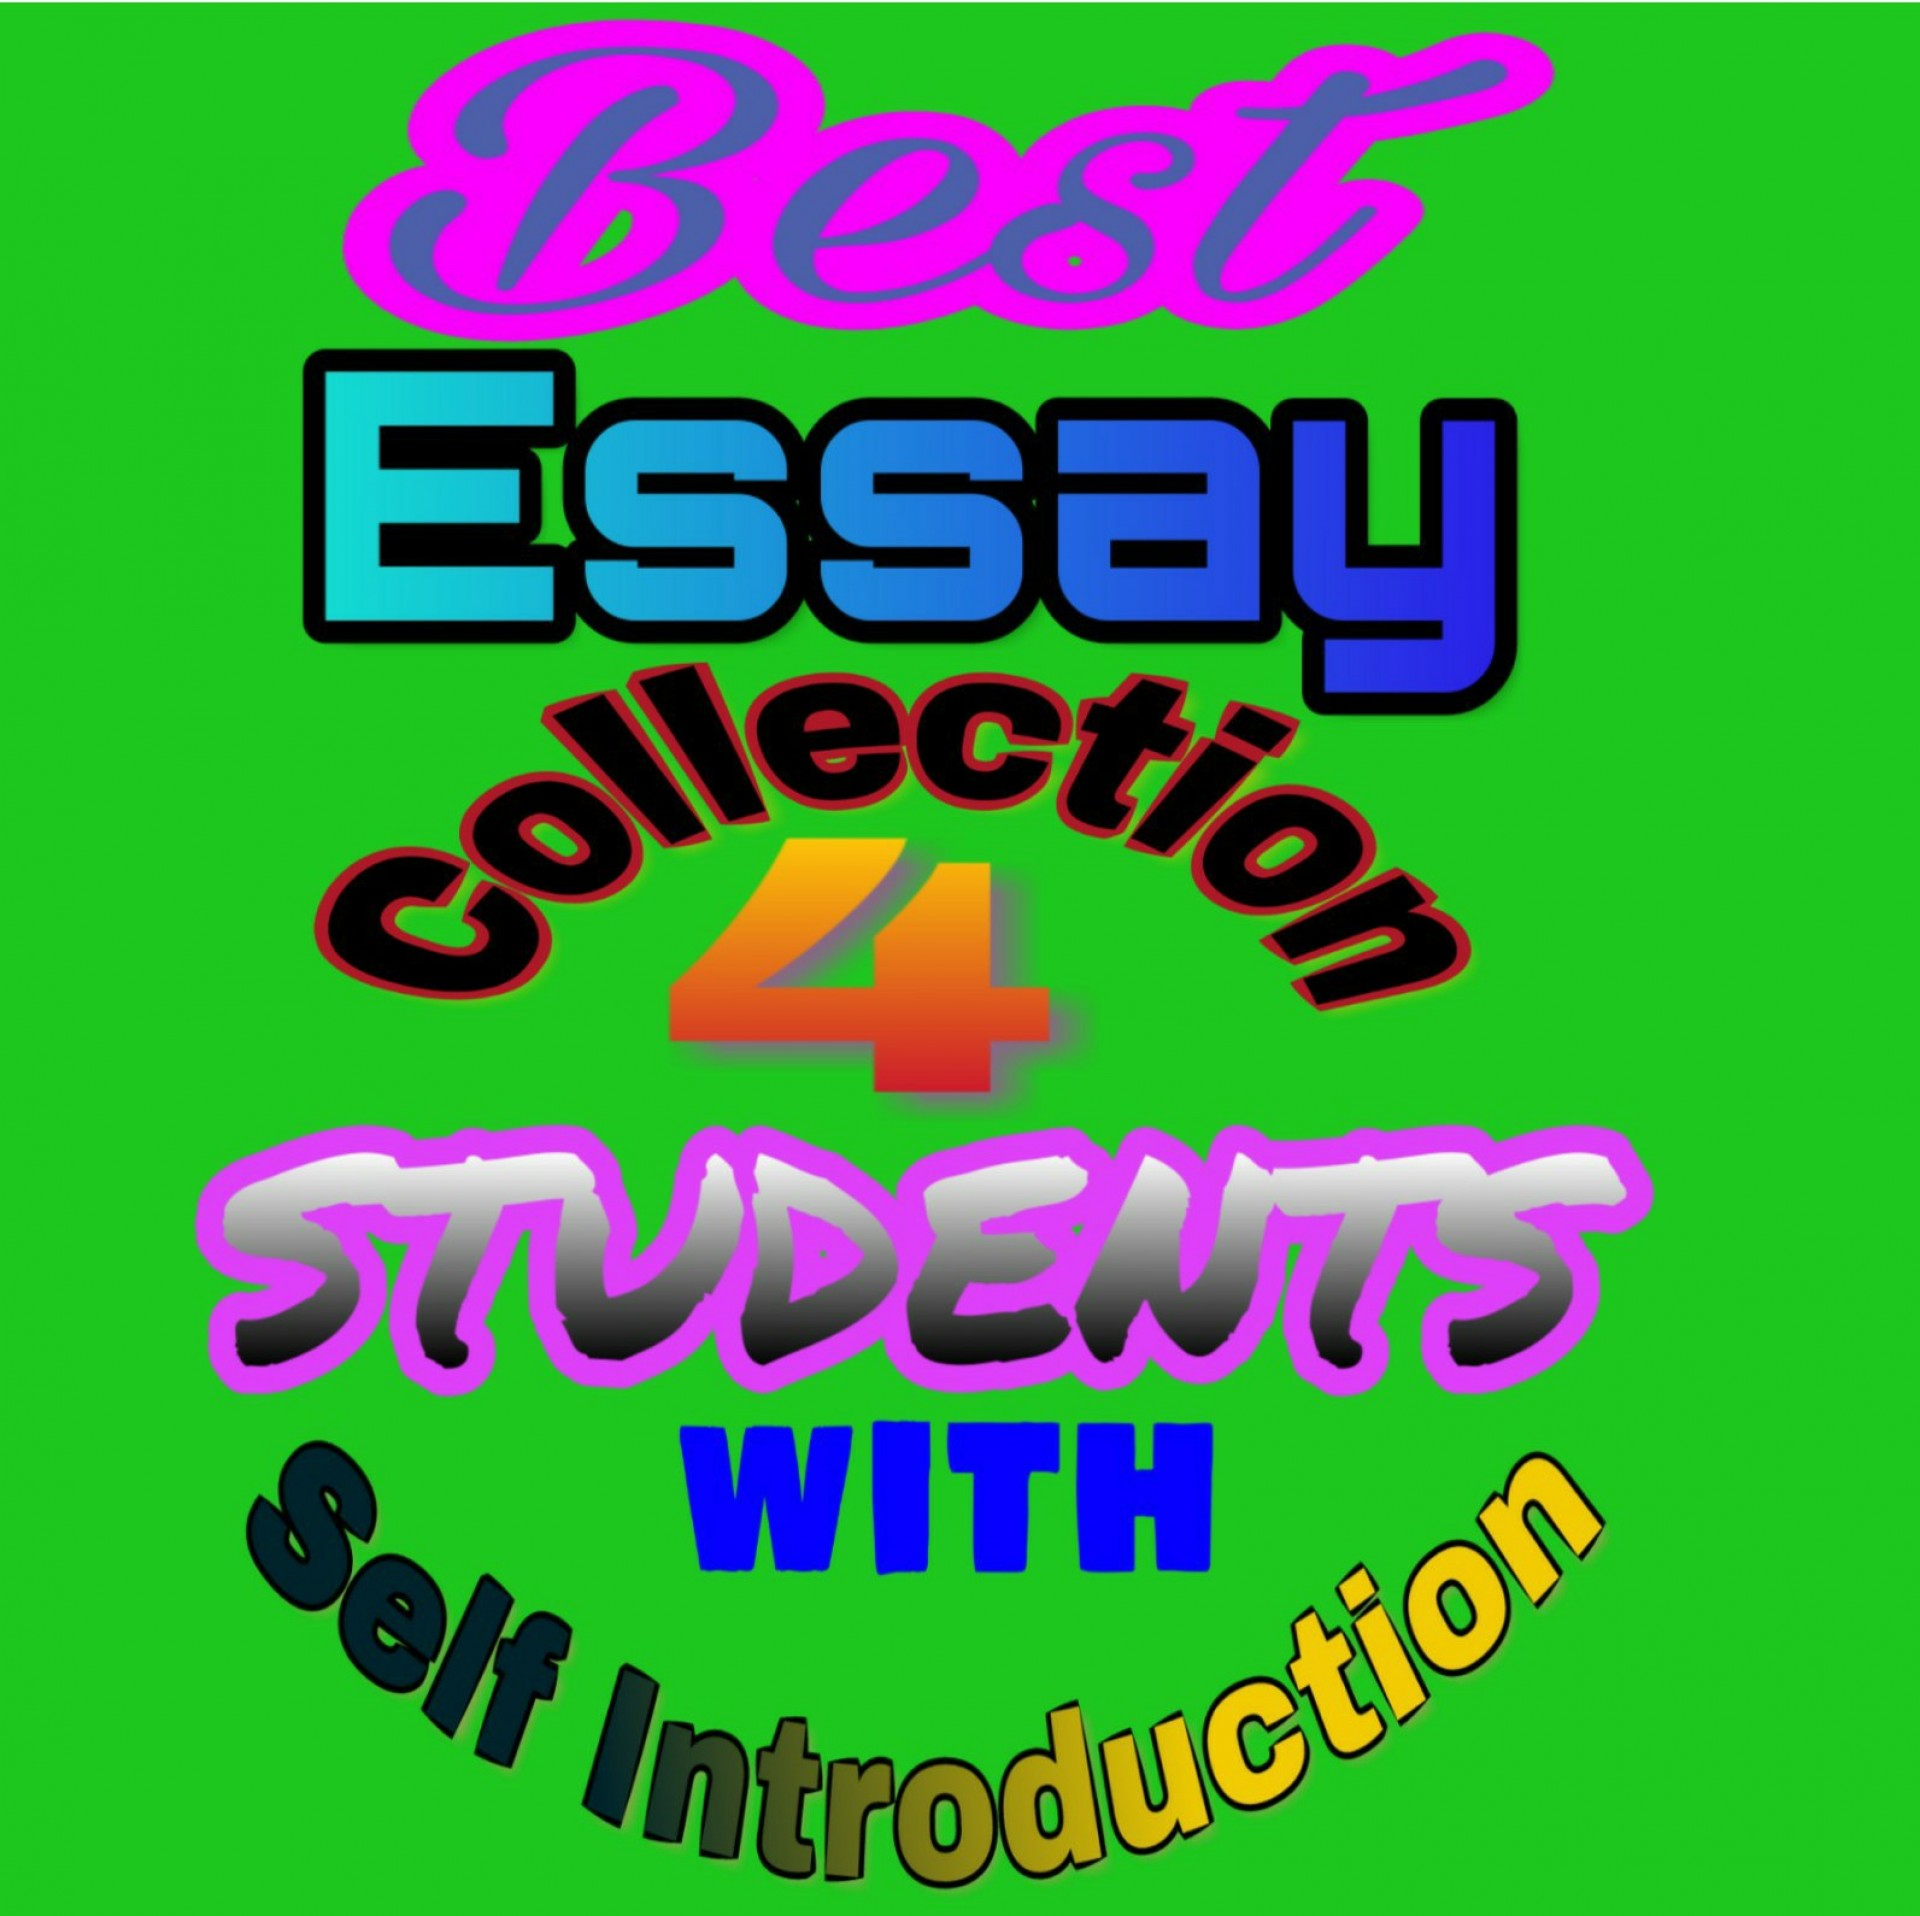 010 Img 20181115 072229 573 Jpg Essay Example Shocking Collection Collections For Students 2017 Best Pdf 1920